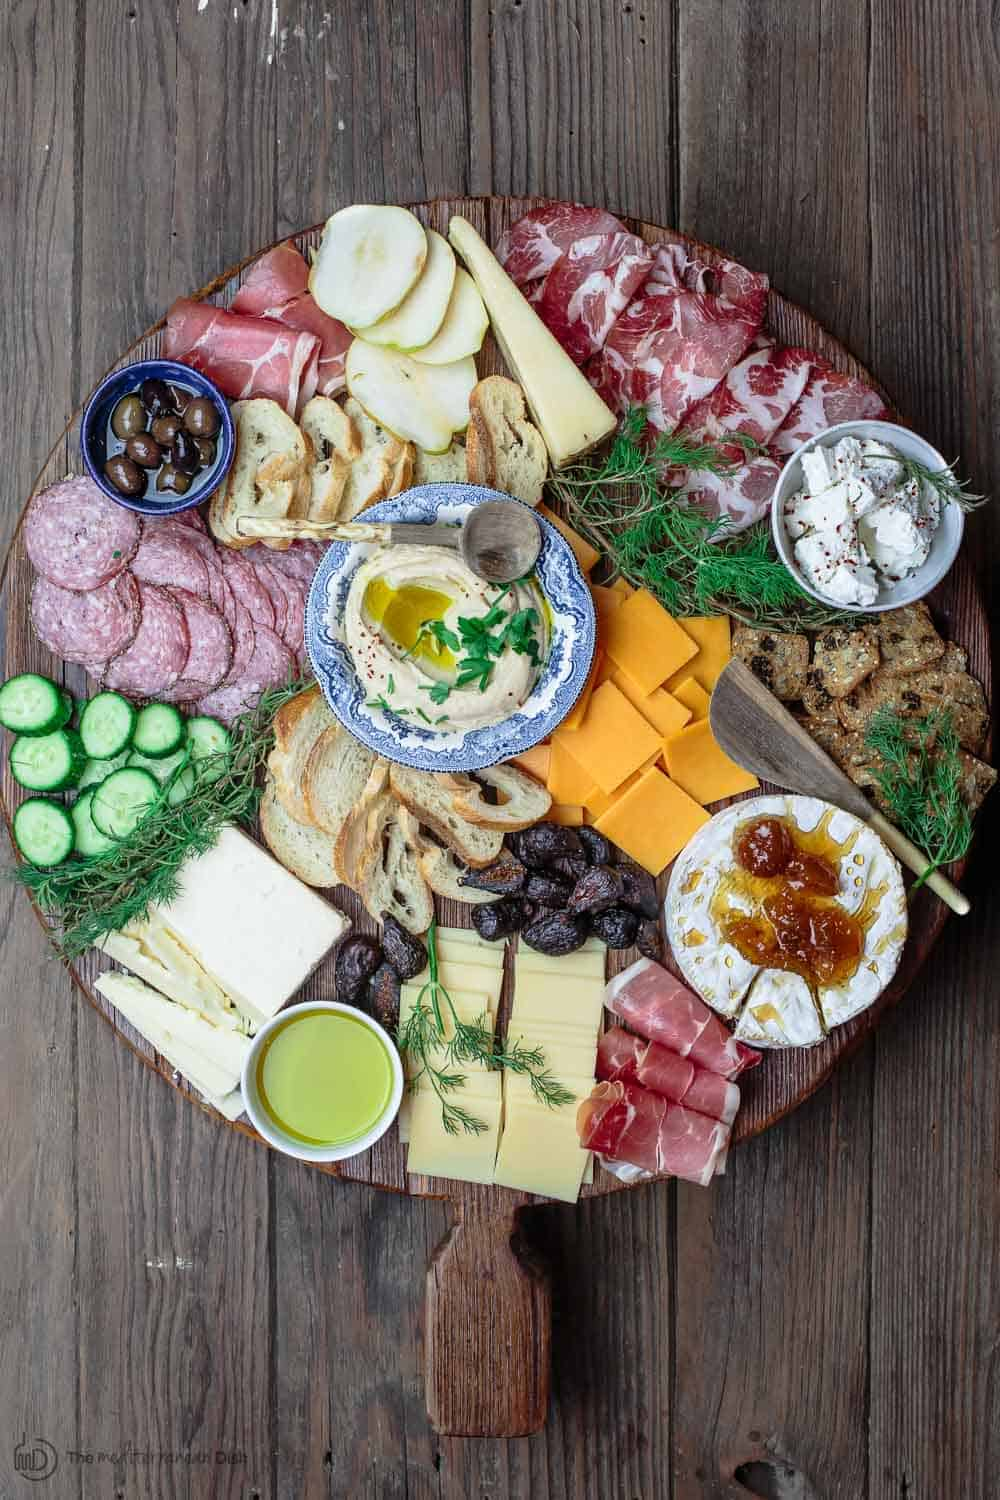 Mediterrane Küche An Bord How To Make The Best Cheese Board A Complete Guide